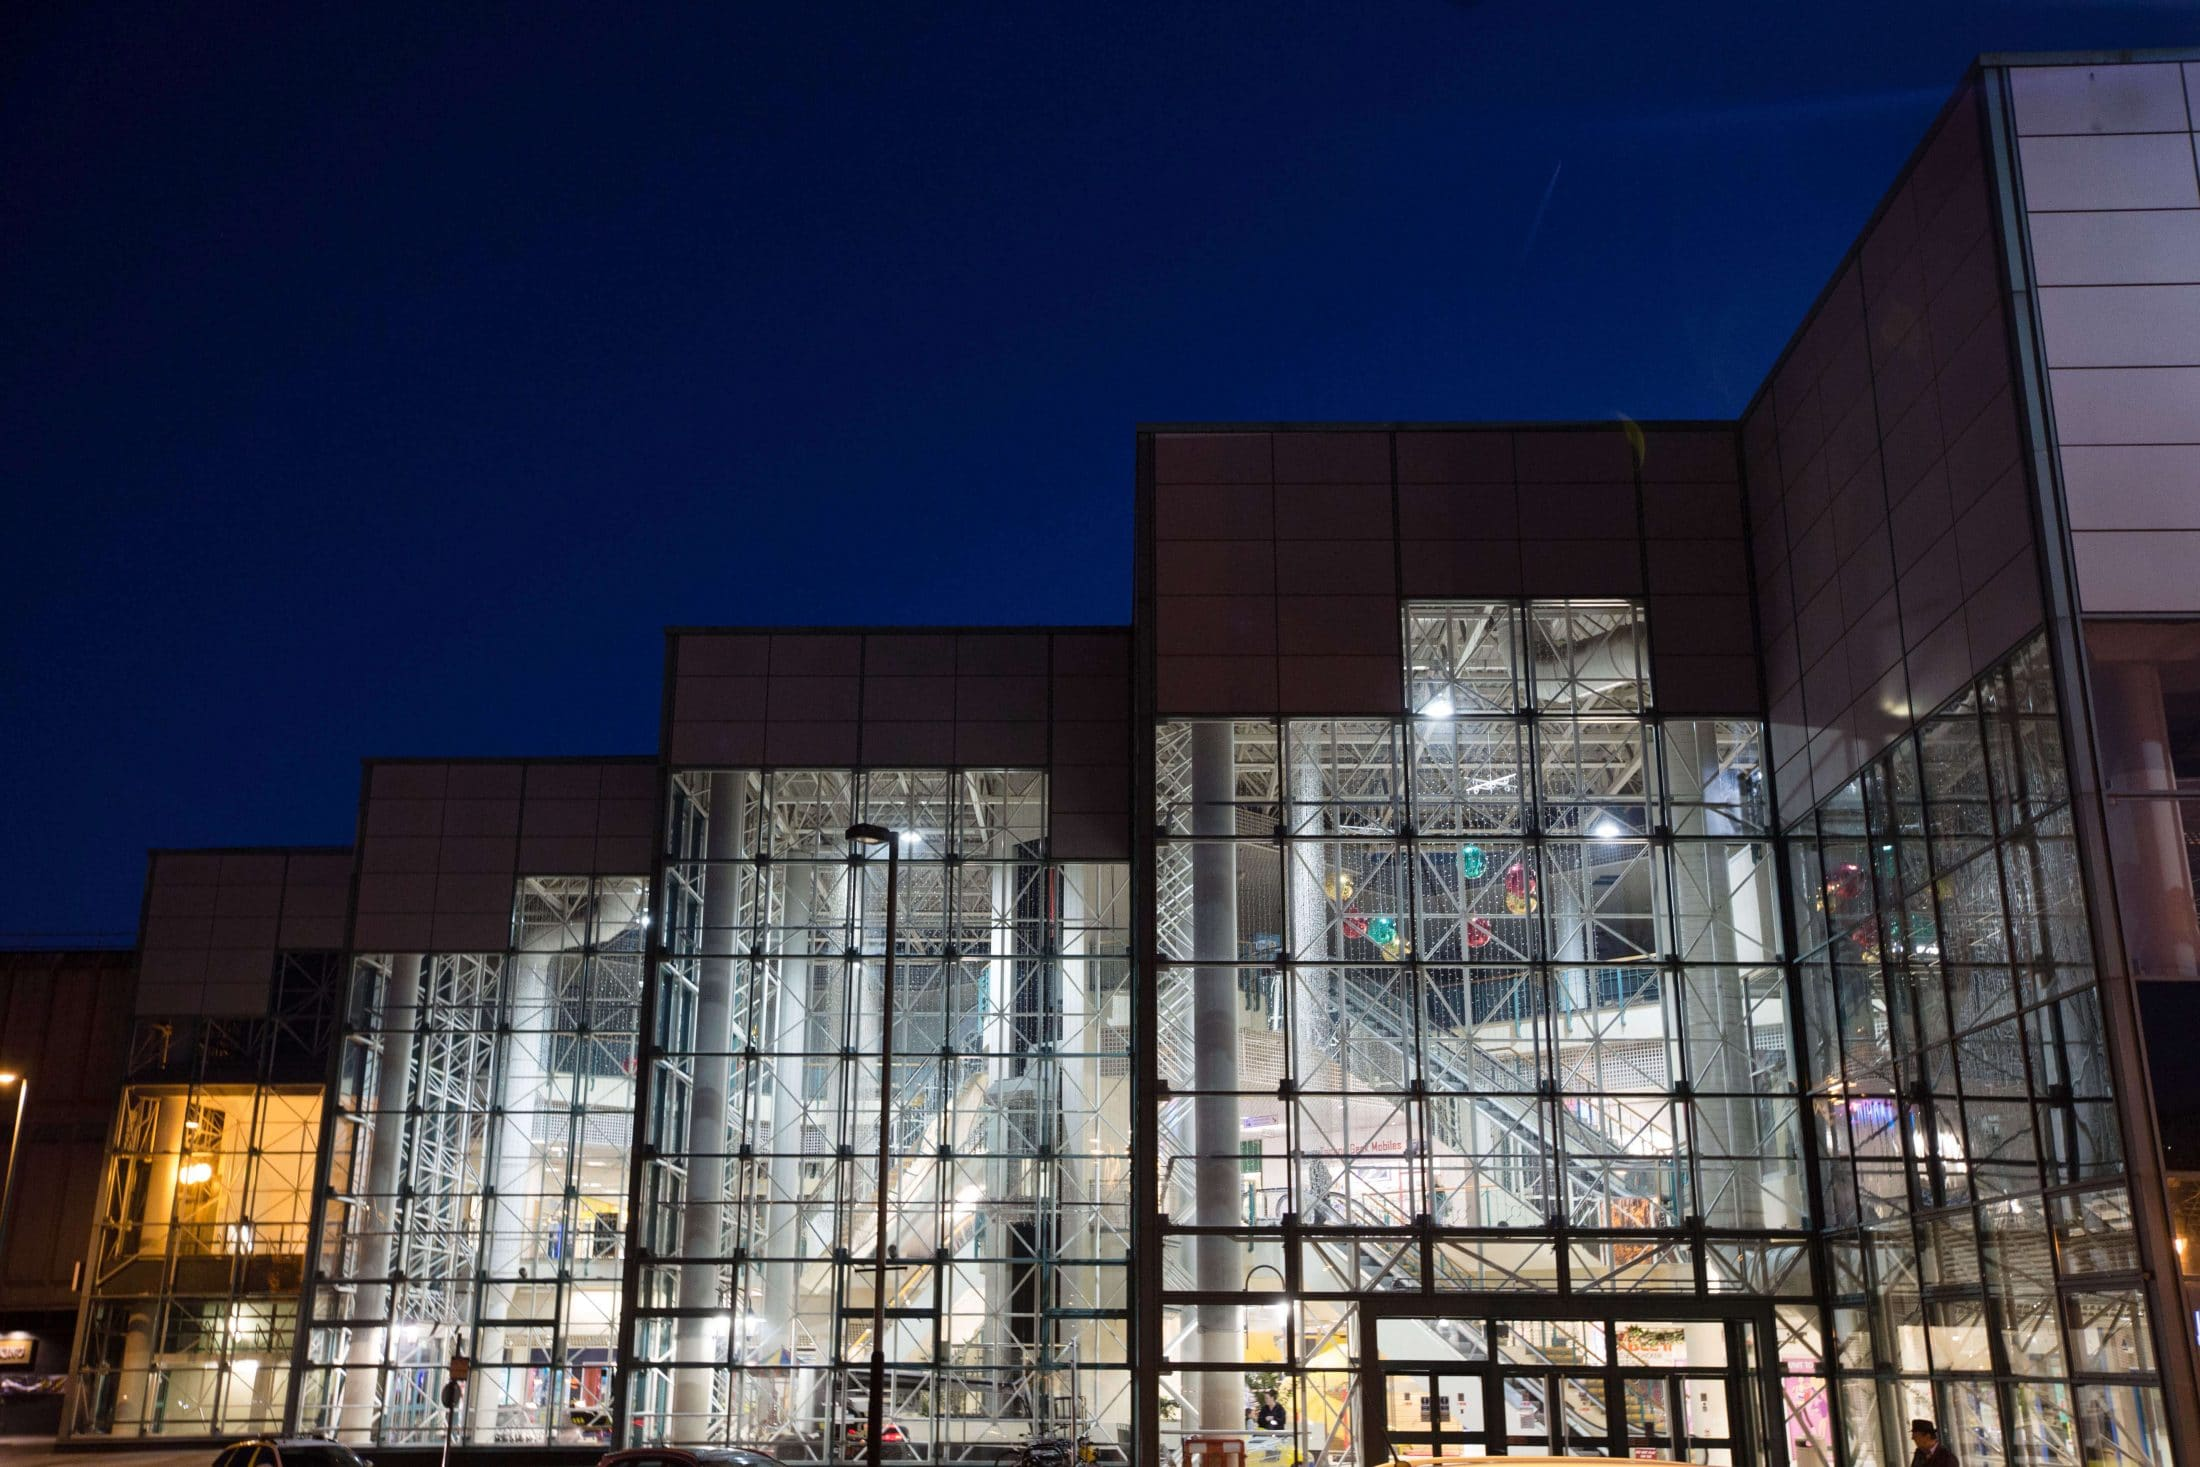 The Skelmersdale Concourse shopping mall lit up at night